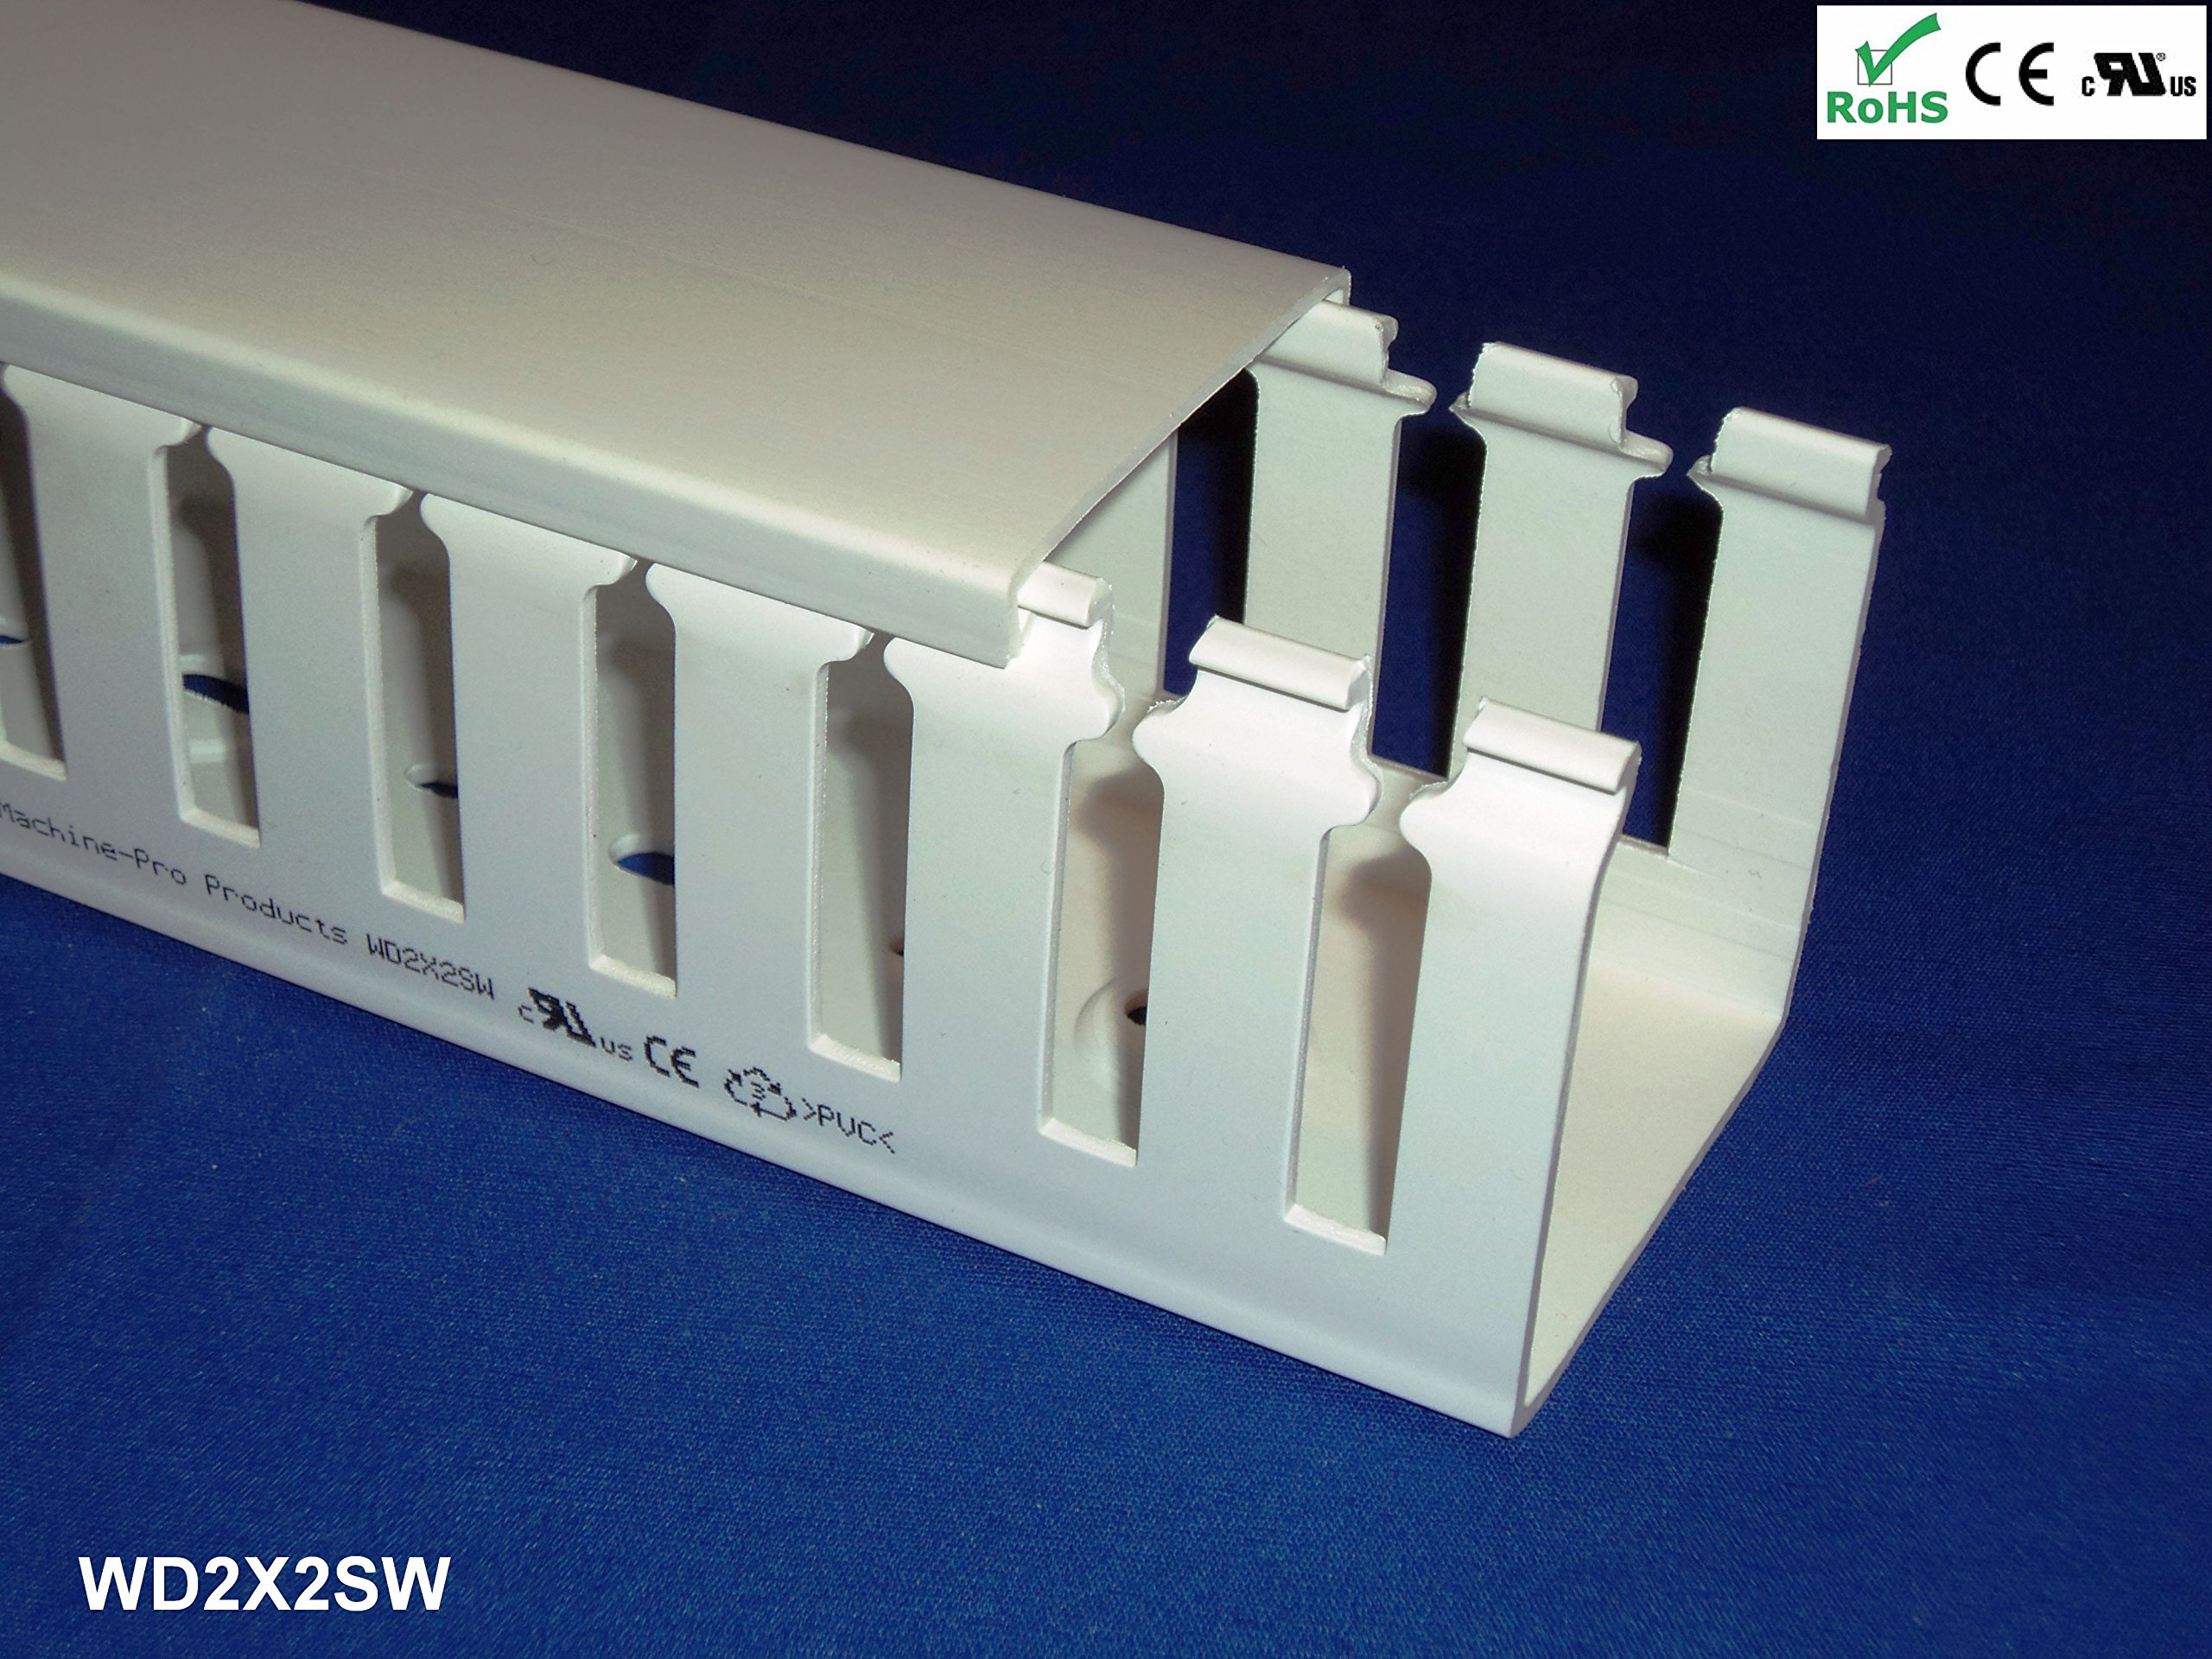 12 Pack of 2x2x78 Inch(60mmx60mmx2m) Open Slot Wiring Duct/Cable Raceaway with Cover Lid - White